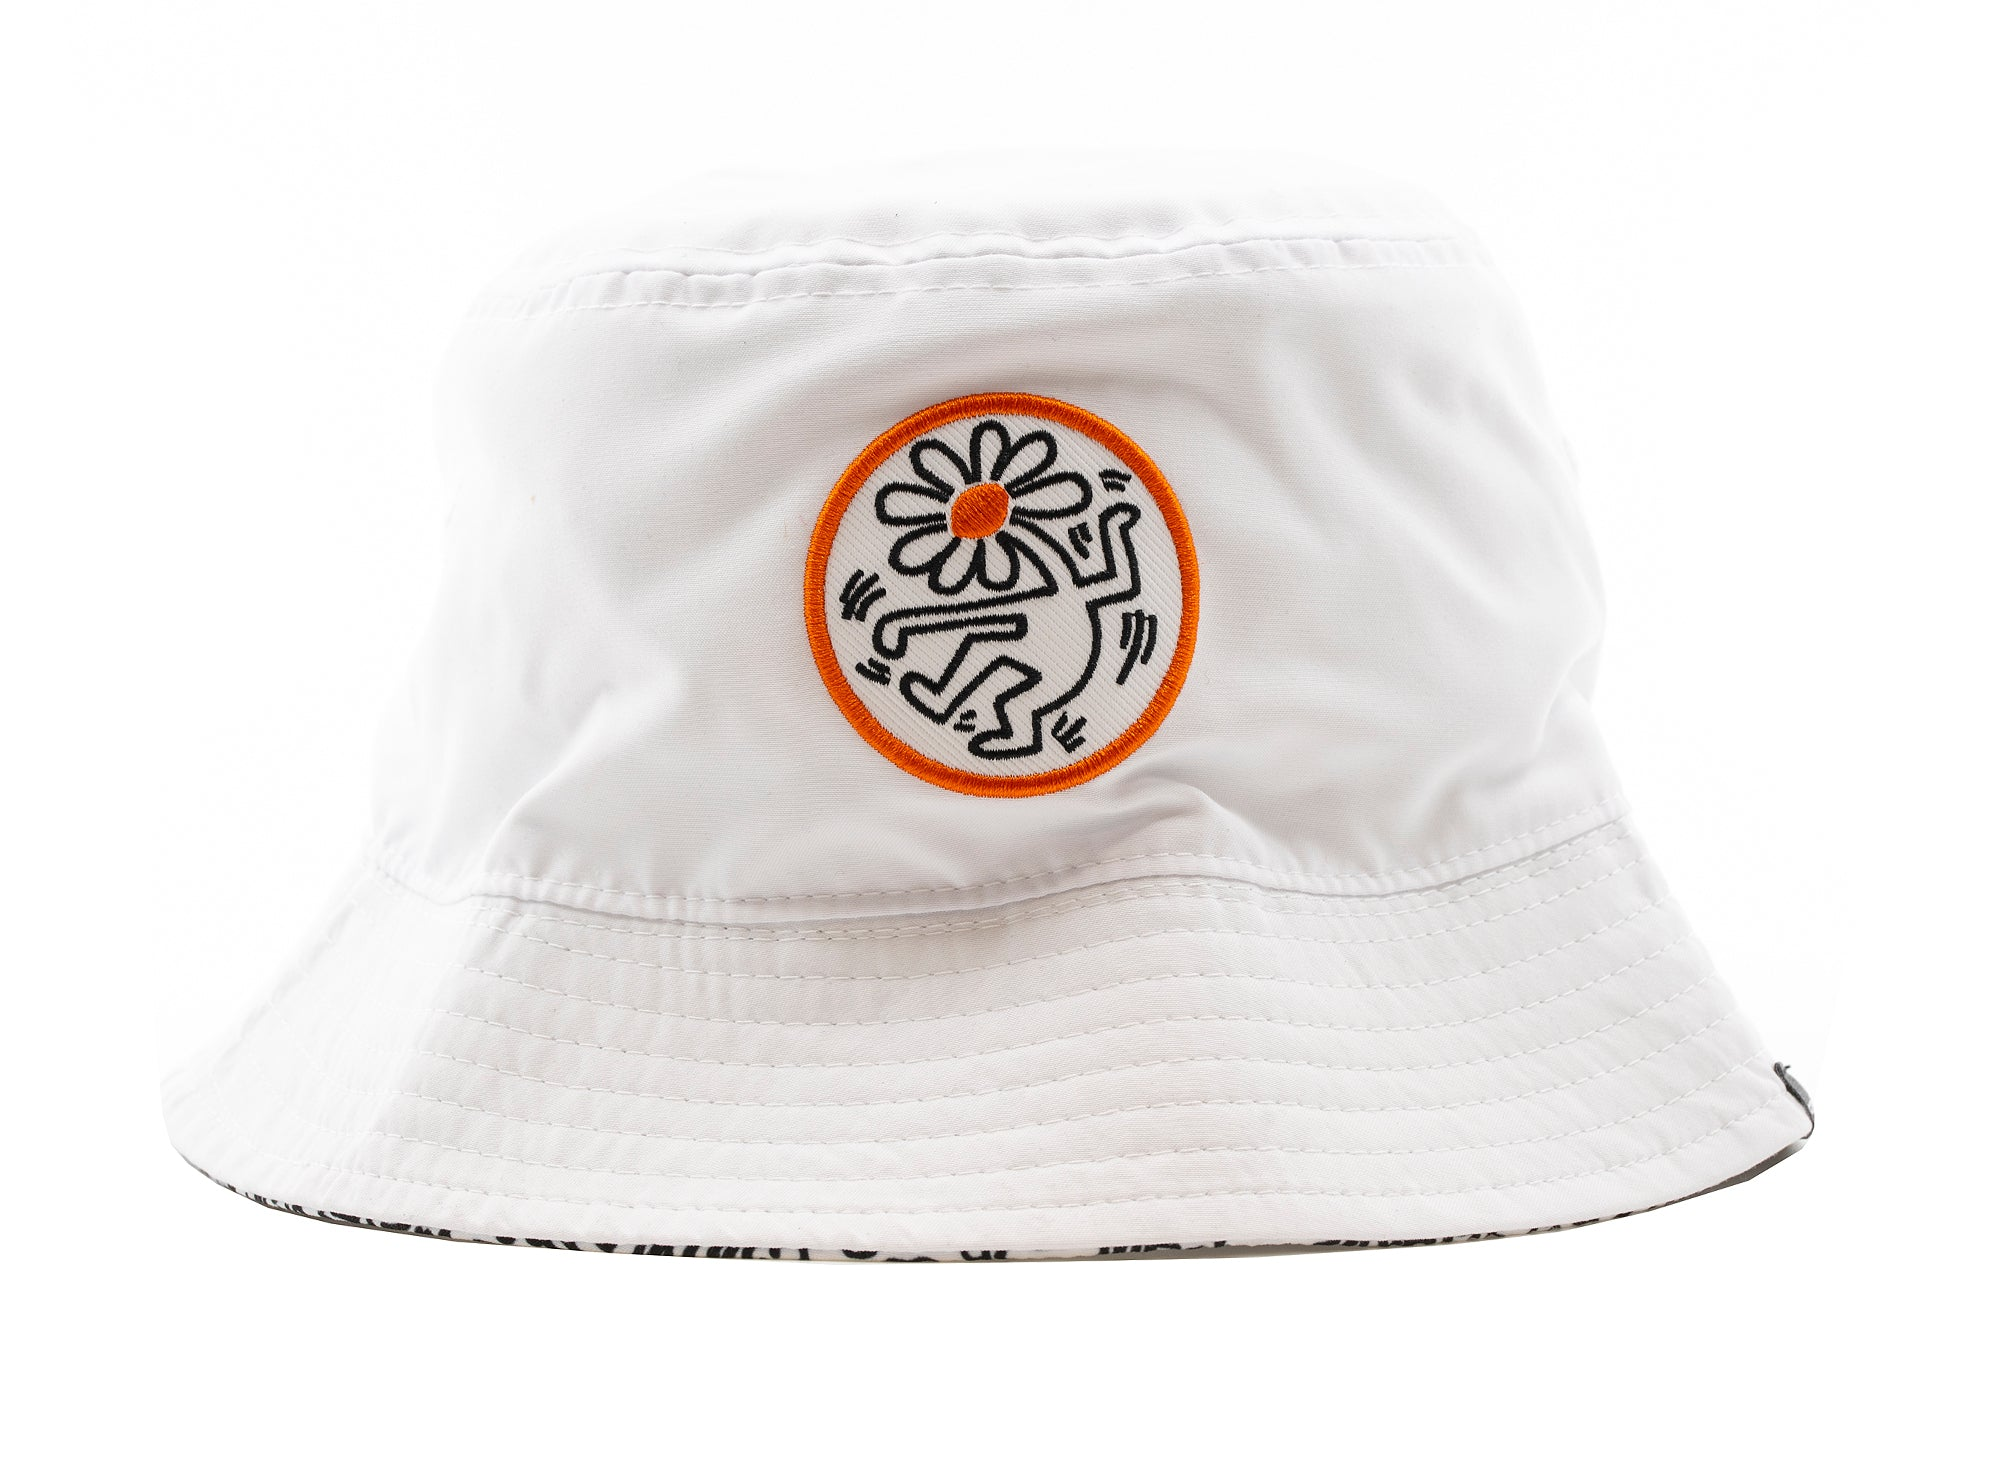 Converse x Keith Haring Reversible Bucket Hat xld